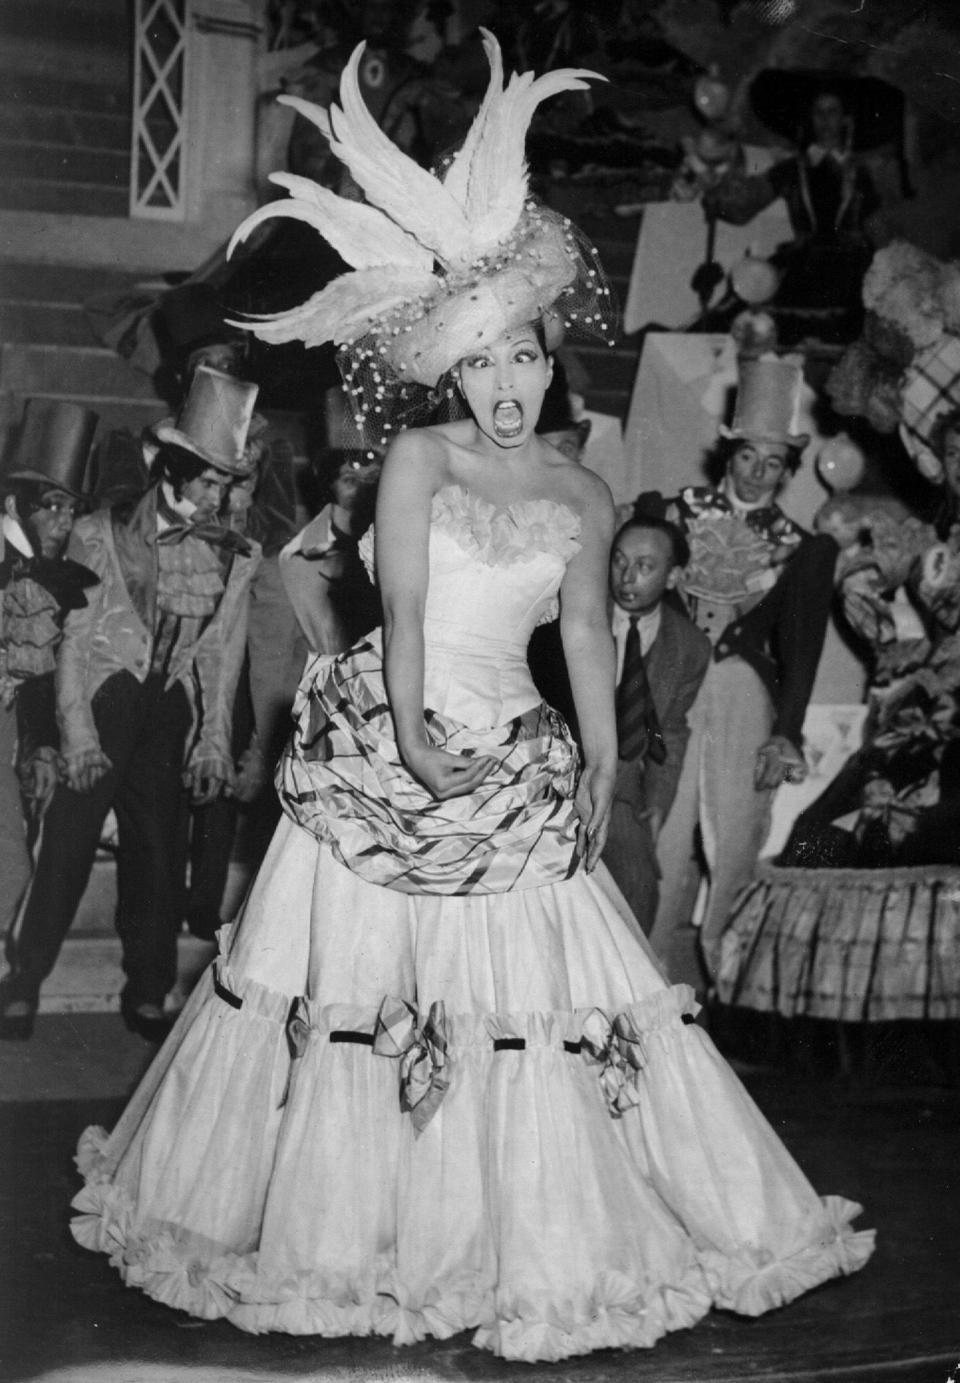 FILE - In this Feb. 21, 1949 file photo, singer and dancer Josephine Baker performs during a show in Paris. The remains of American-born singer and dancer Josephine Baker will be reinterred at the Pantheon monument in Paris, making the entertainer who is a World War II hero in France the first Black woman to get the country's highest honor. Le Parisien newspaper reported Sunday Aug. 22, 2021, that French President Emmanuel Macron decided to organize a ceremony on November 30 at the Paris monument. (AP Photo/File)